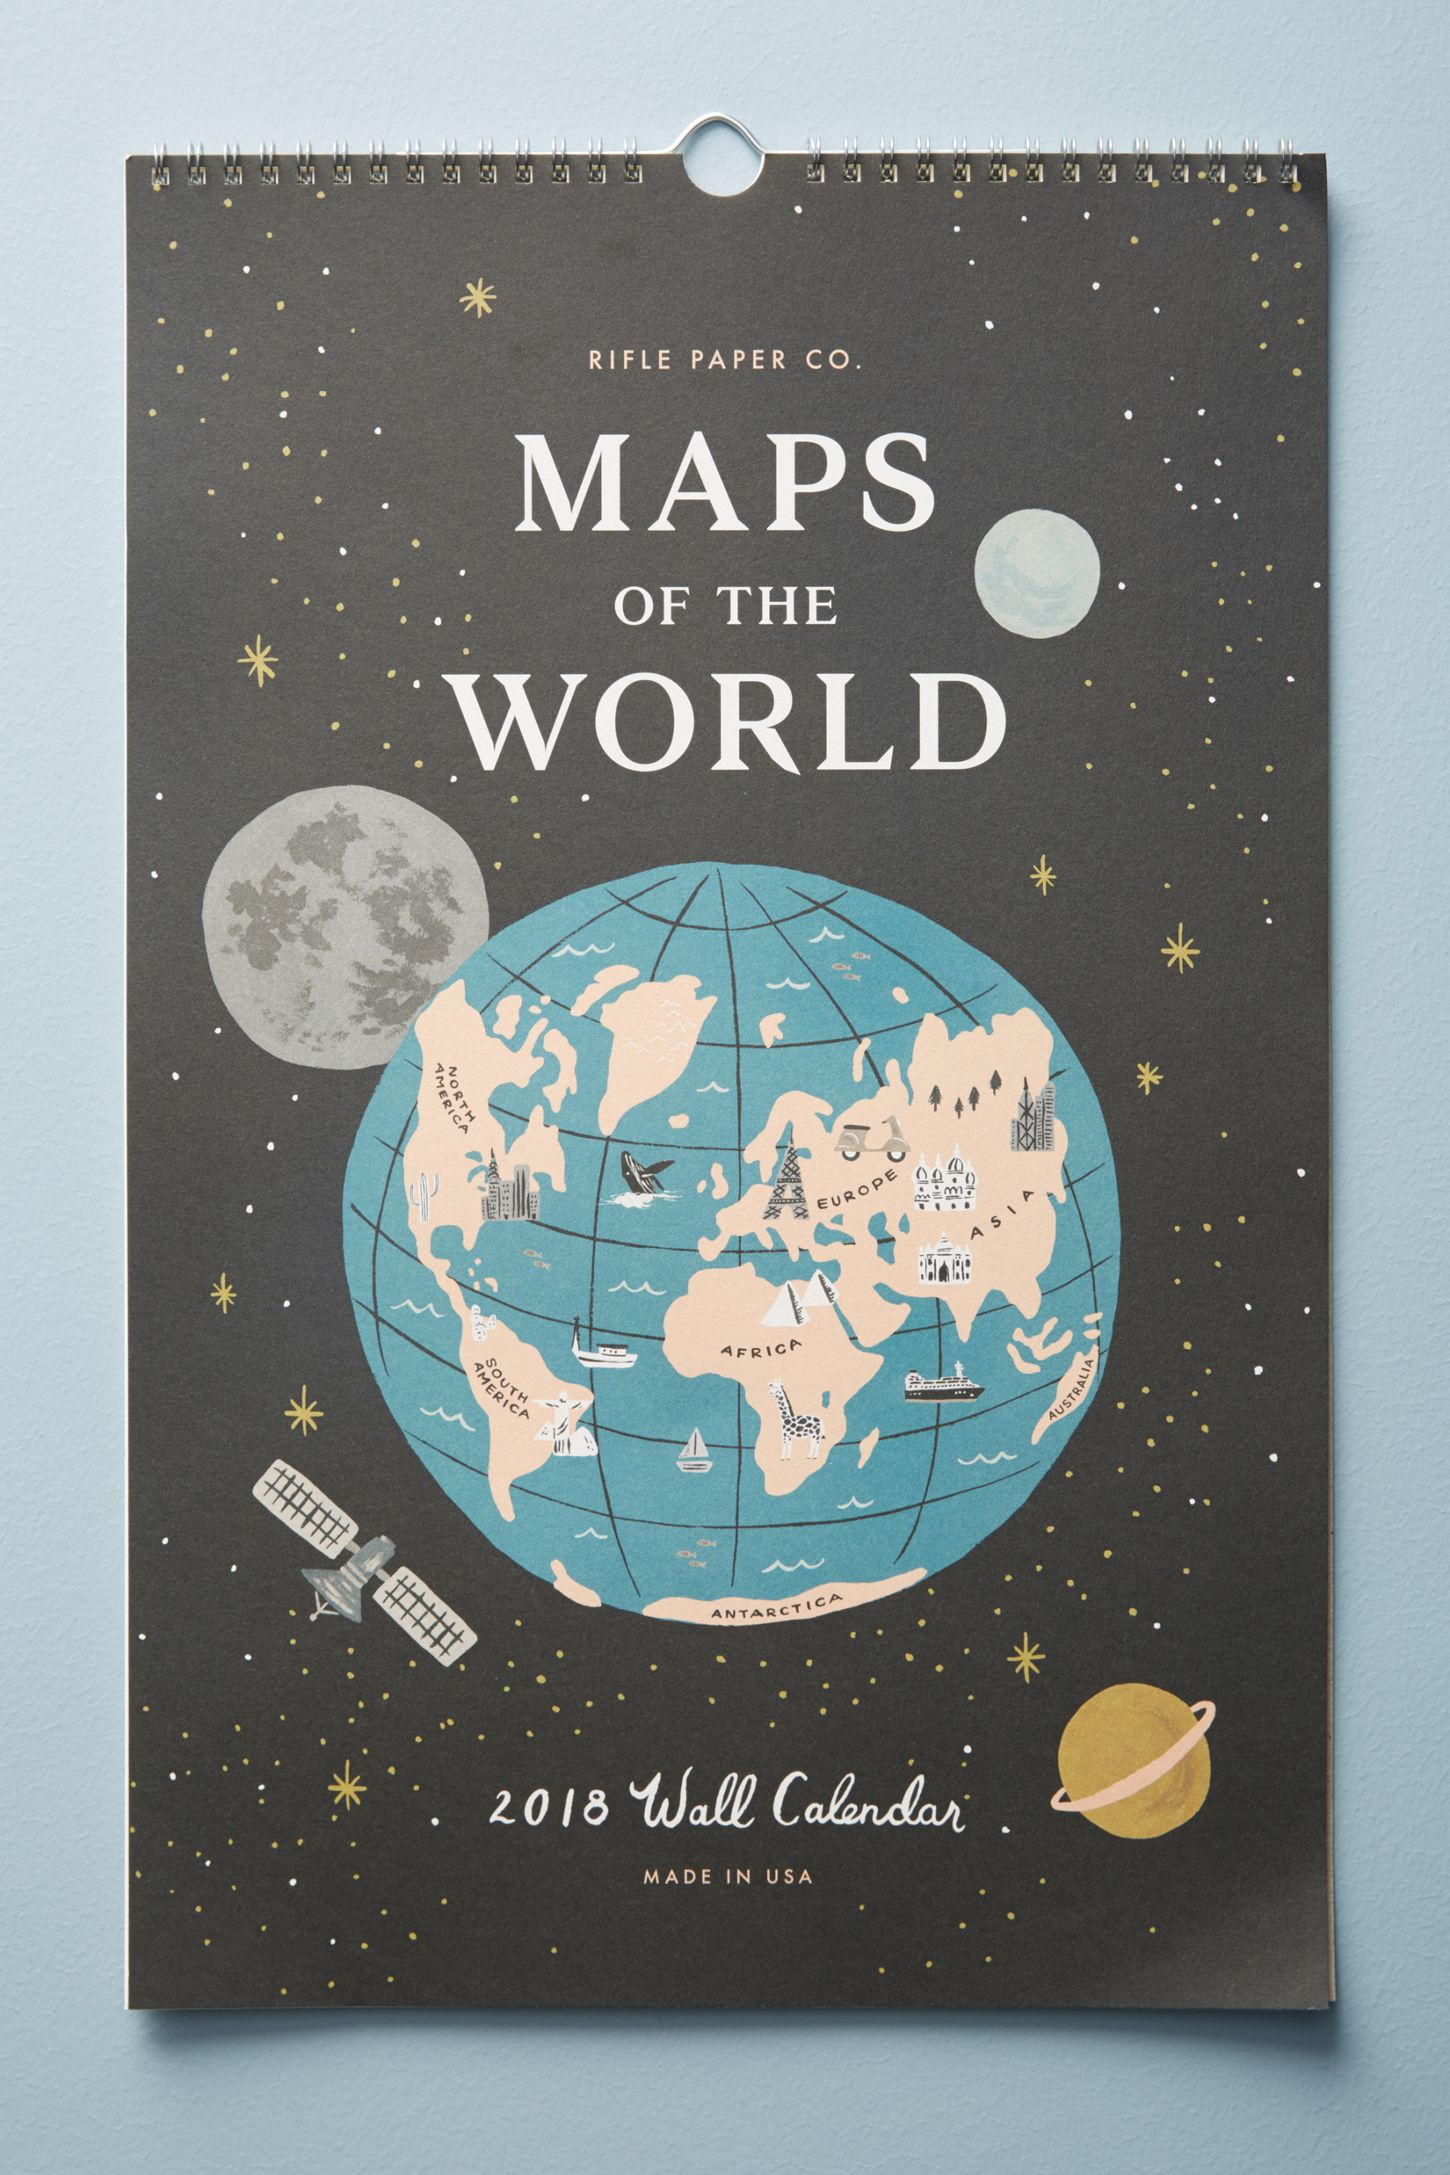 Maps of the world 2018 calendar anthropologie double tap to zoom gumiabroncs Images